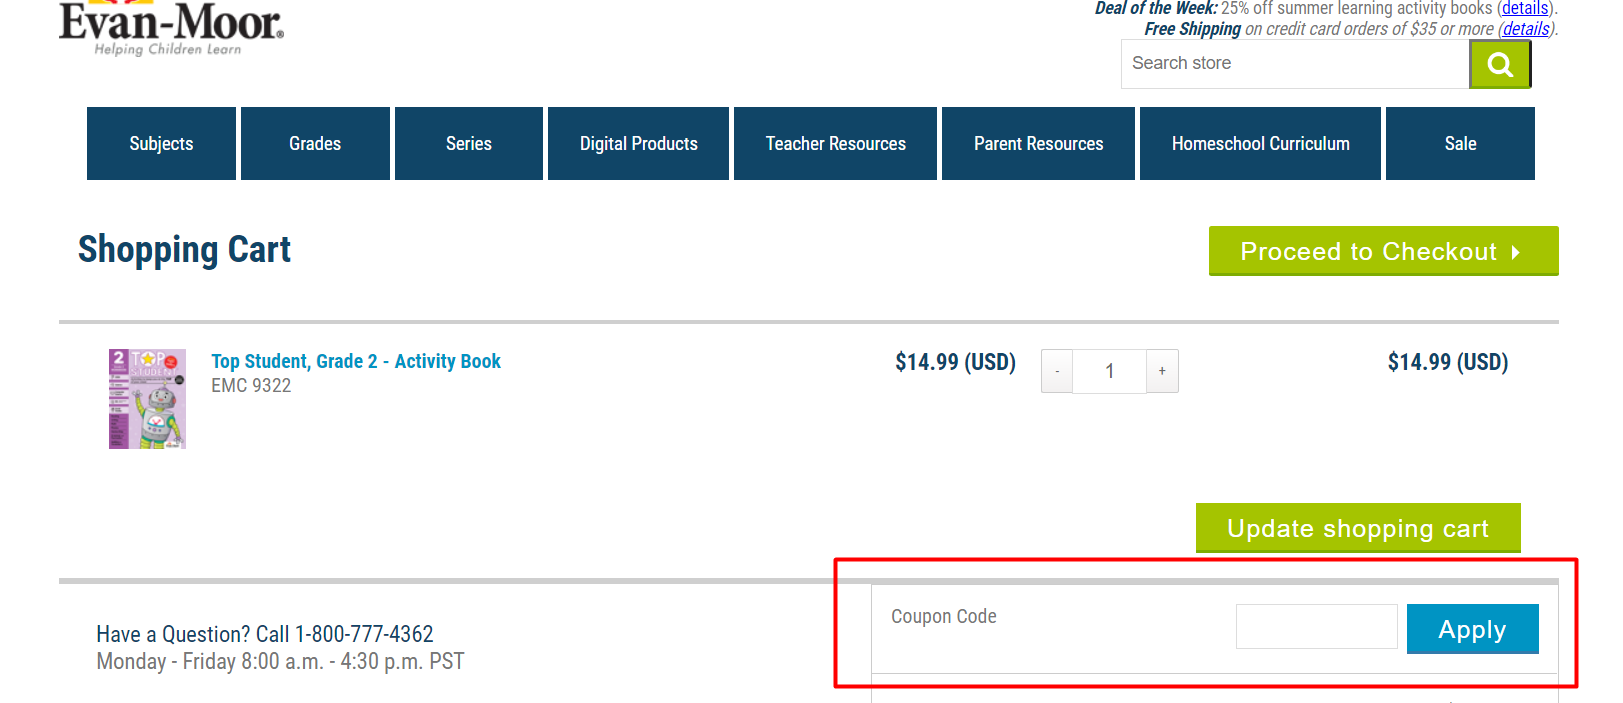 How do I use my Evan-Moor Educational Publishers discount code?